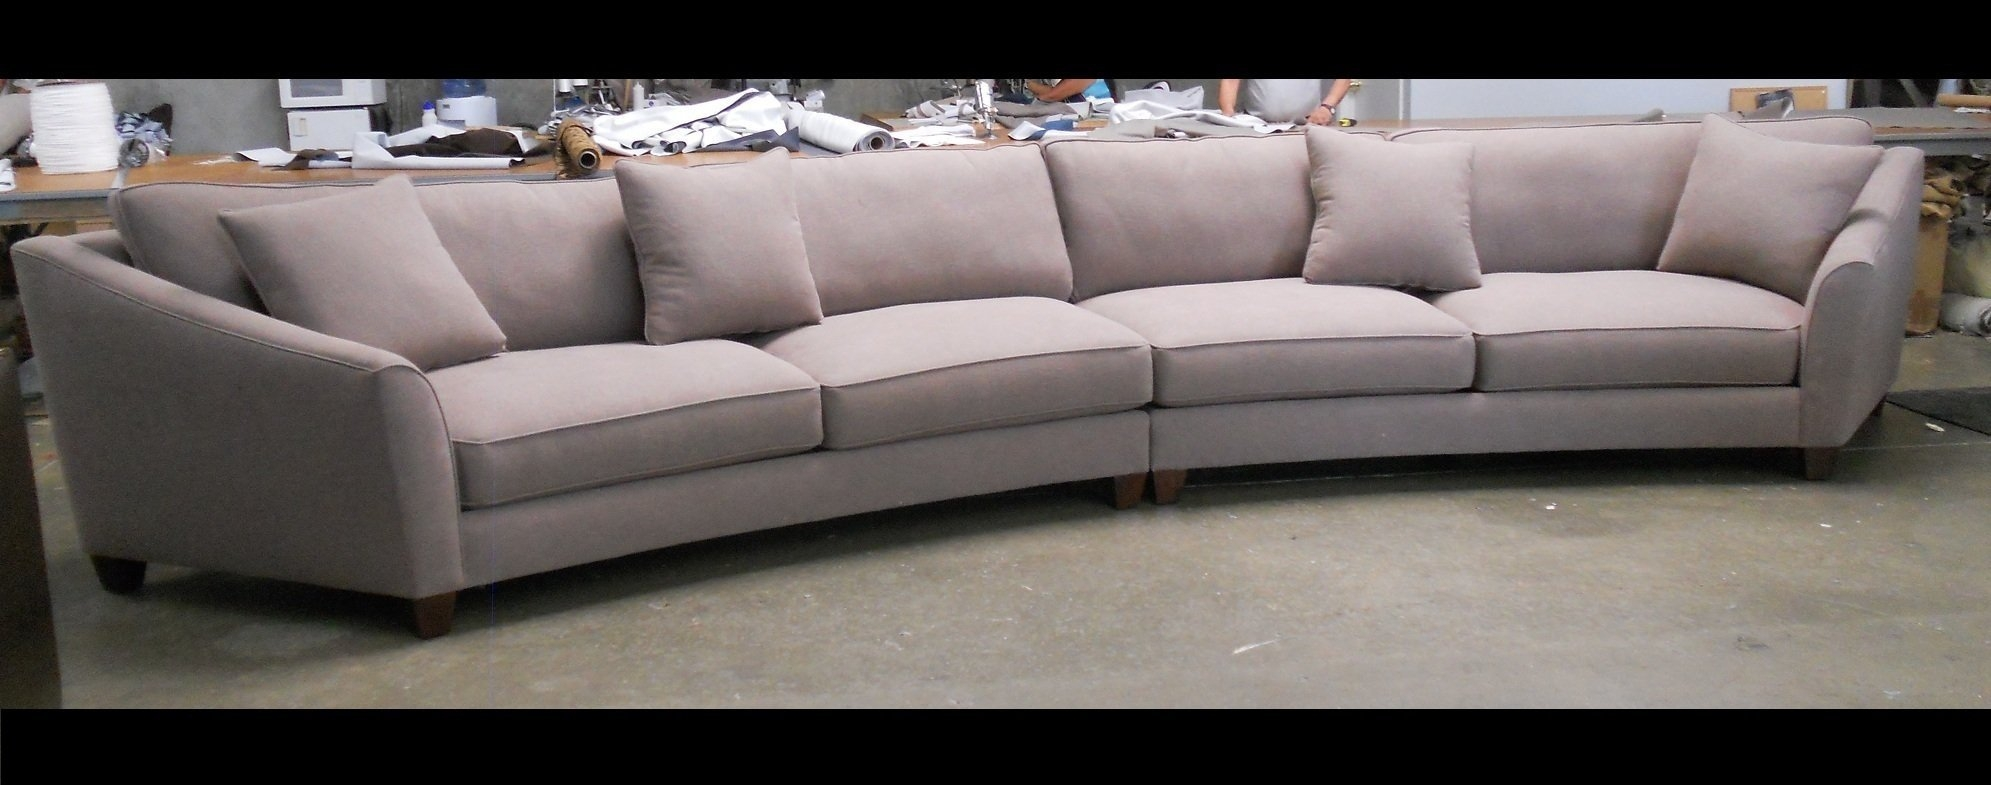 Curved Sectional Sofa Set Rich Comfortable Upholstered Fabric Intended For Circular Sectional Sofa (#3 of 12)